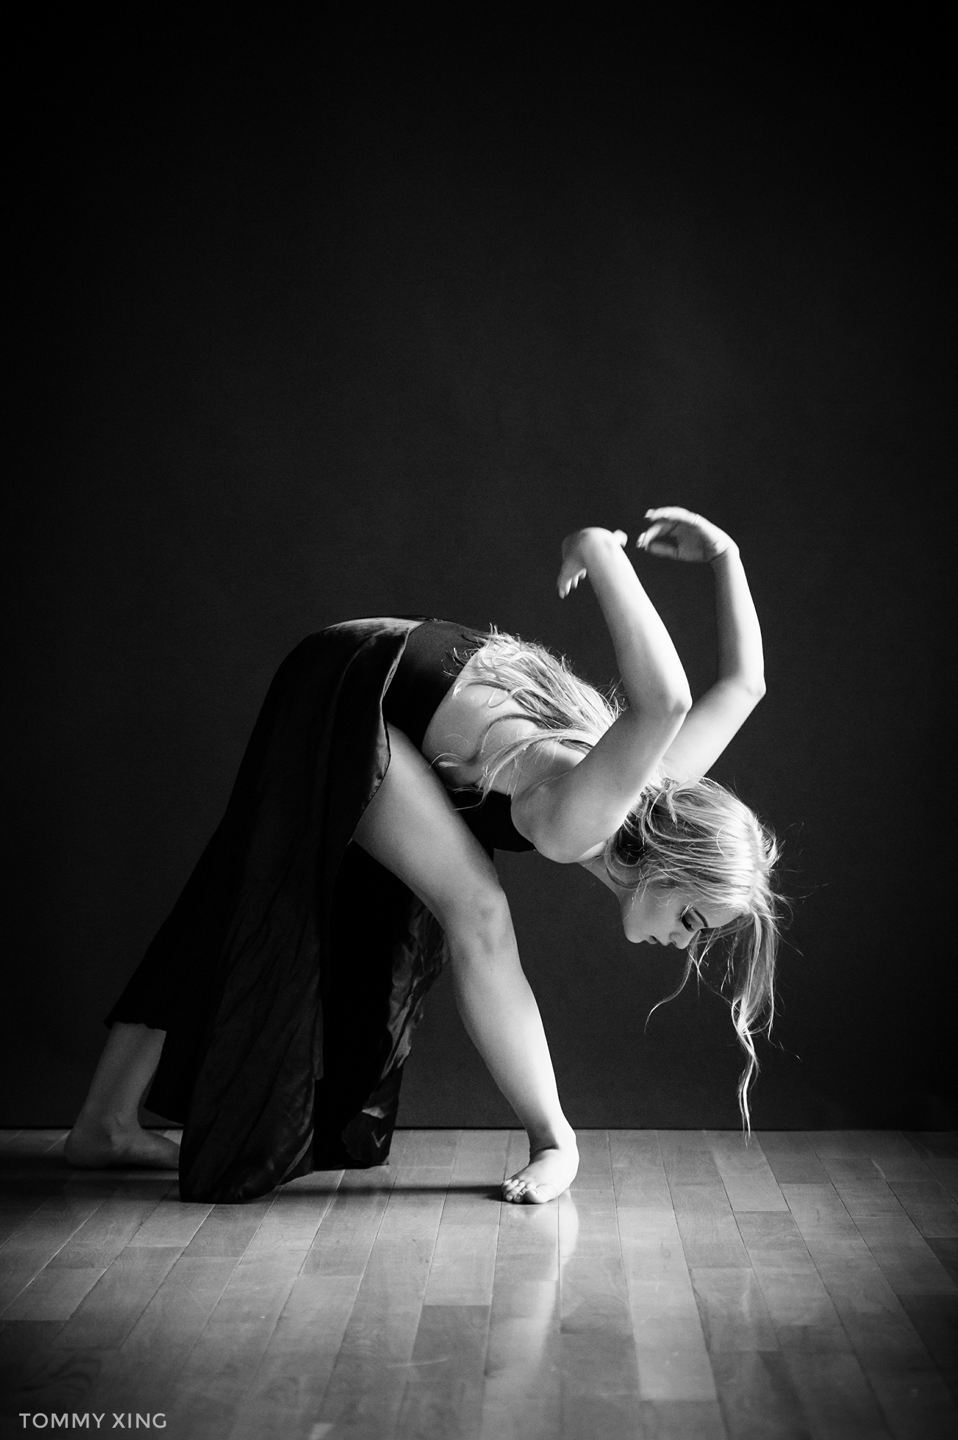 Los Angeles Dance photography - Haley - Tommy Xing12.JPG